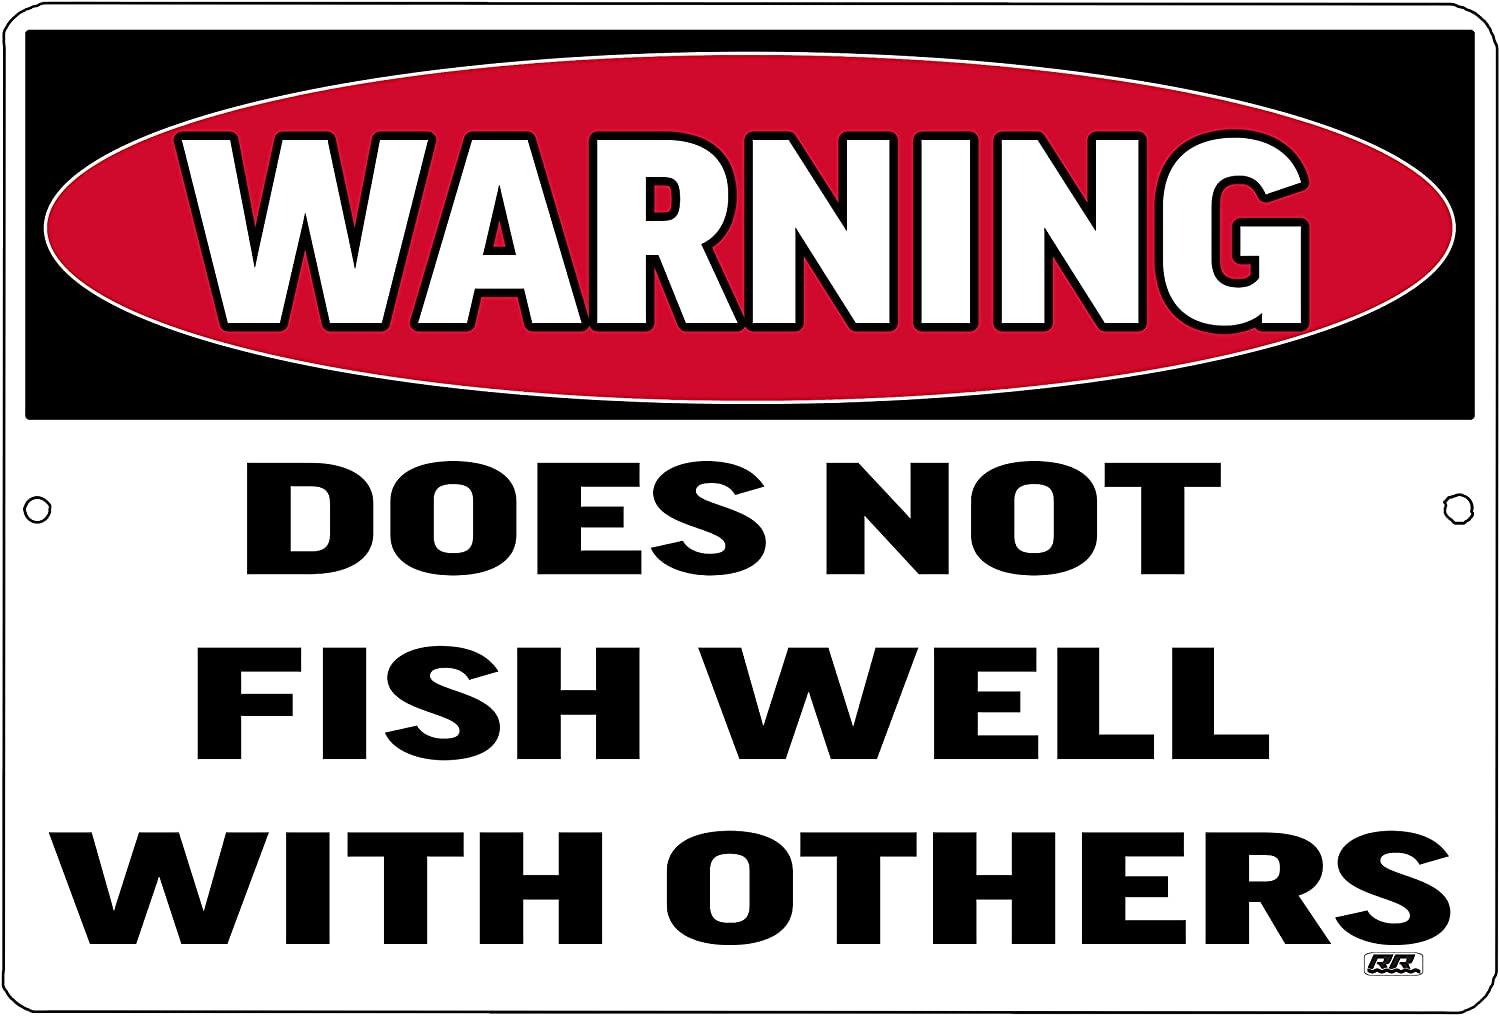 Rogue River Tactical Funny Fishing Boat Metal Tin Sign Wall Decor Man Cave Bar Warning Does Not Fish Well with Others